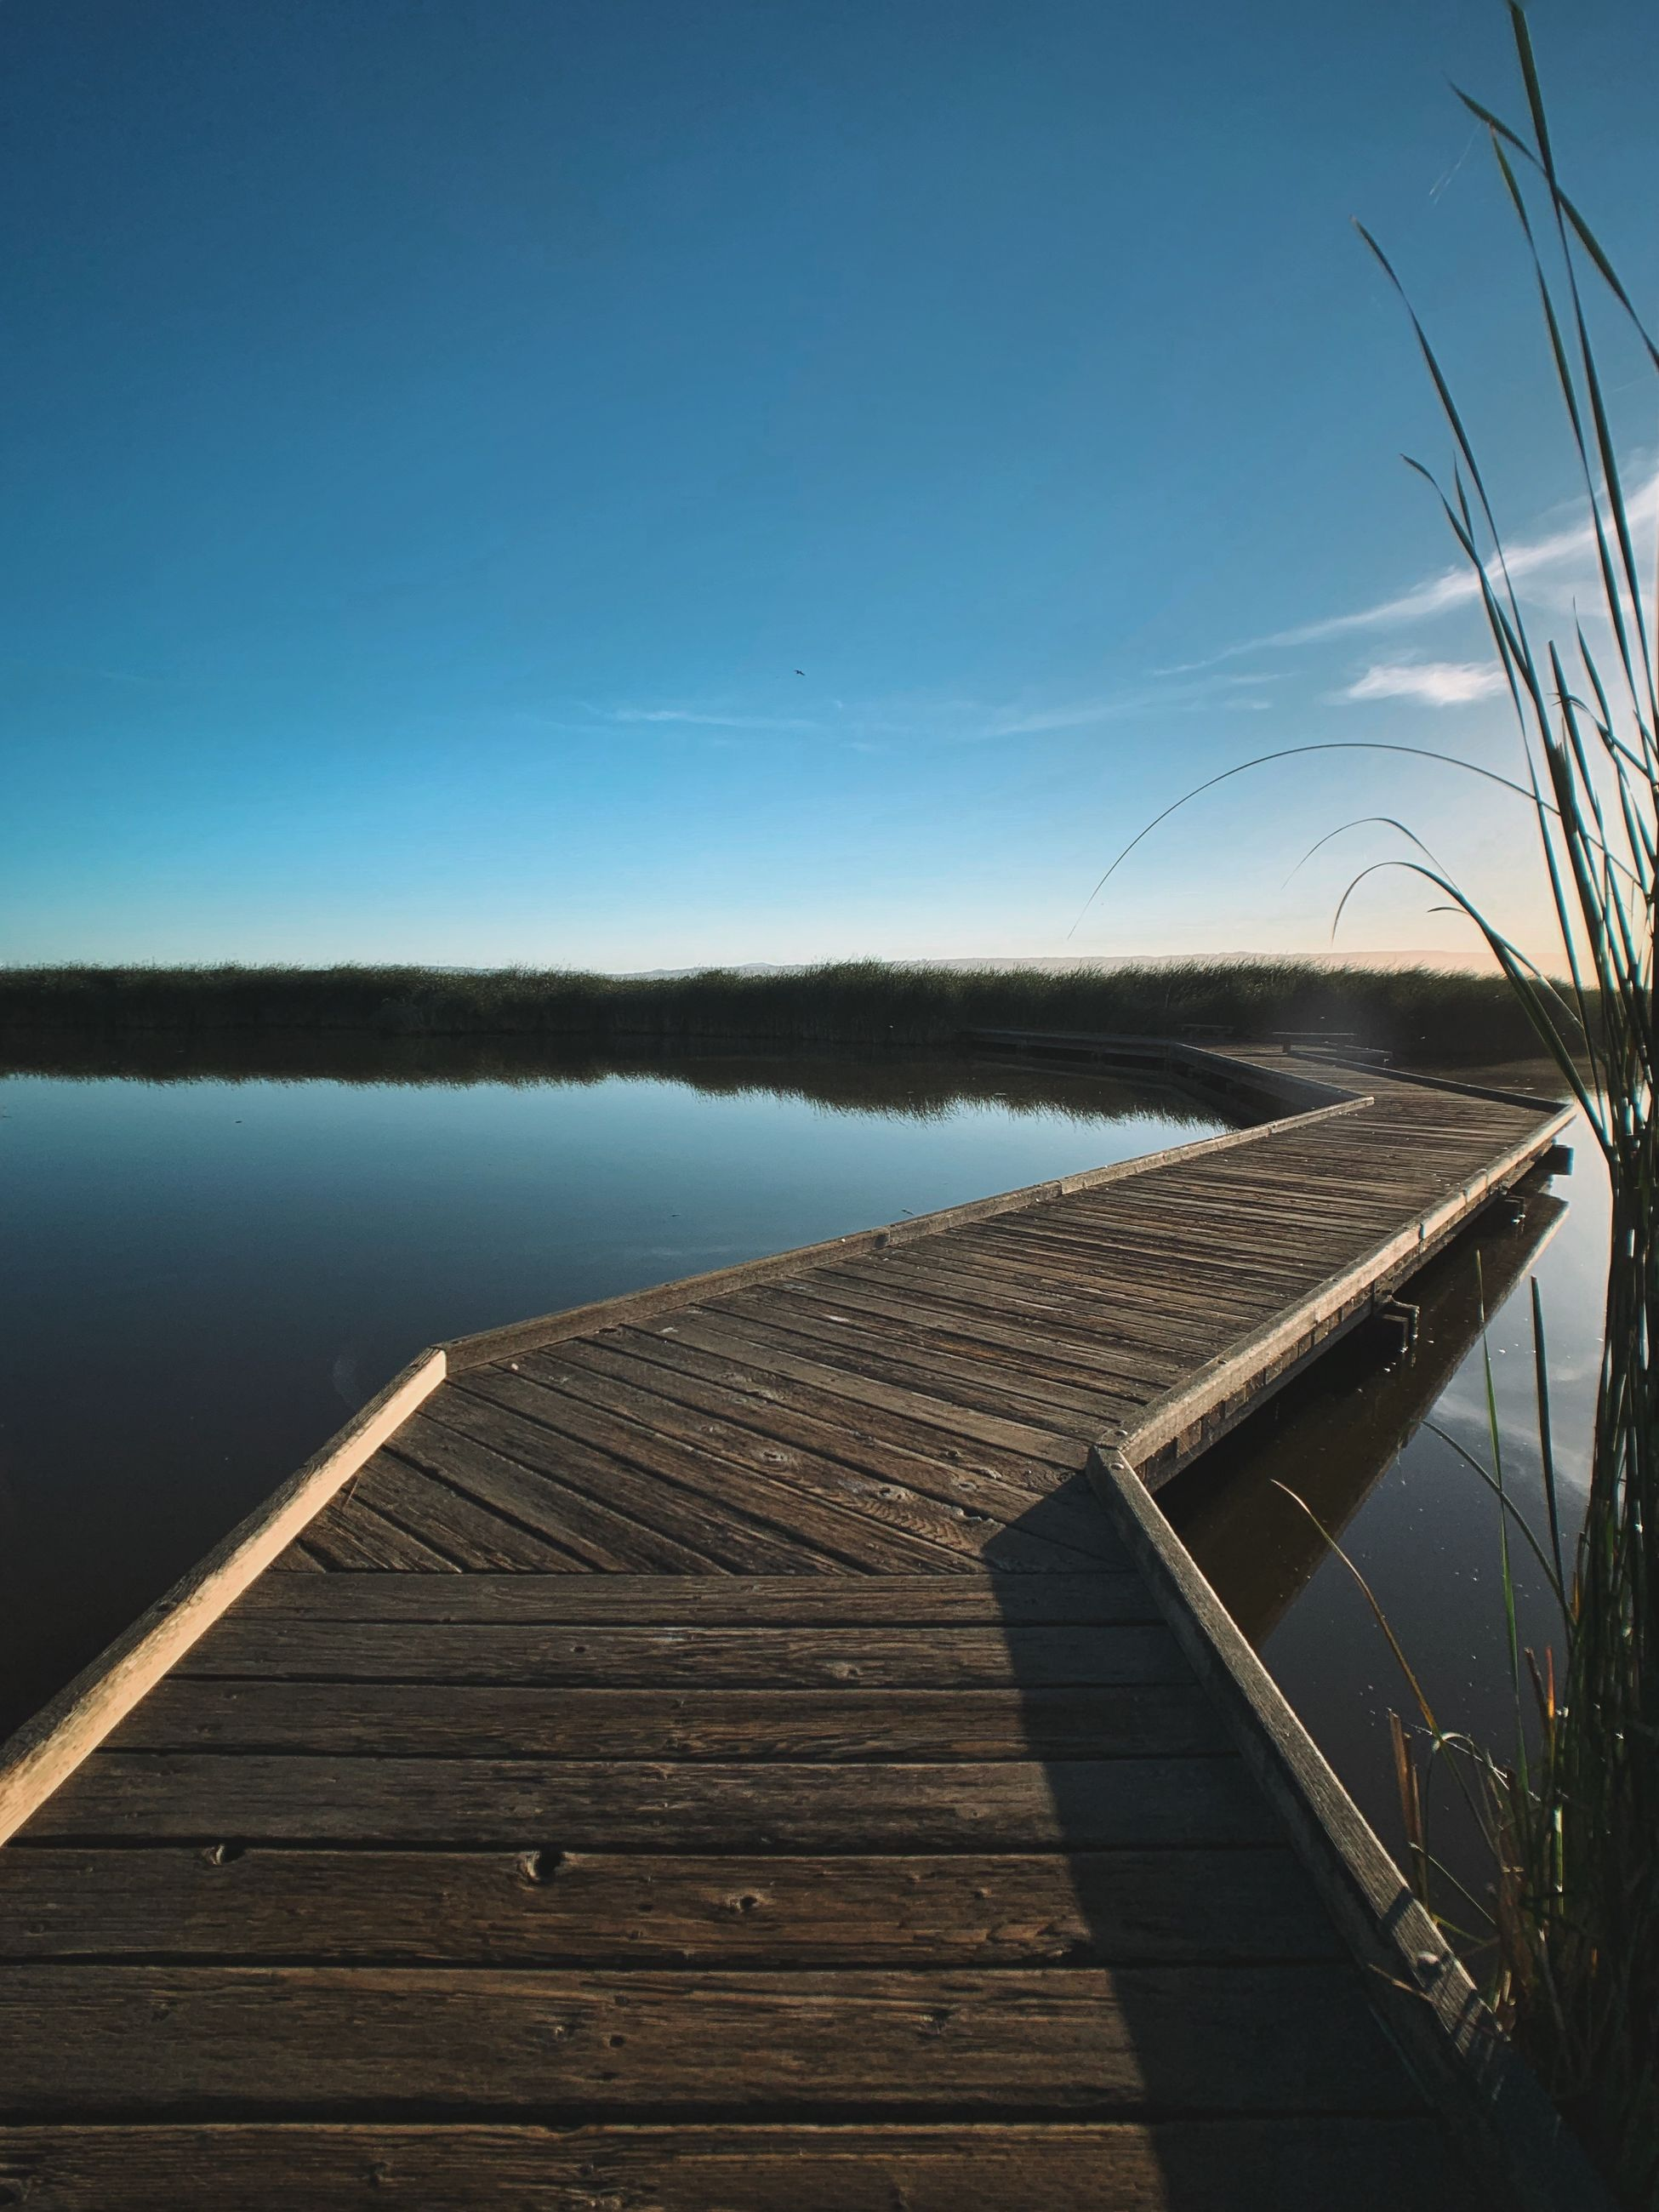 water, lake, wood - material, sky, tranquility, pier, nature, beauty in nature, no people, tranquil scene, jetty, scenics - nature, the way forward, non-urban scene, day, blue, direction, outdoors, plant, wood paneling